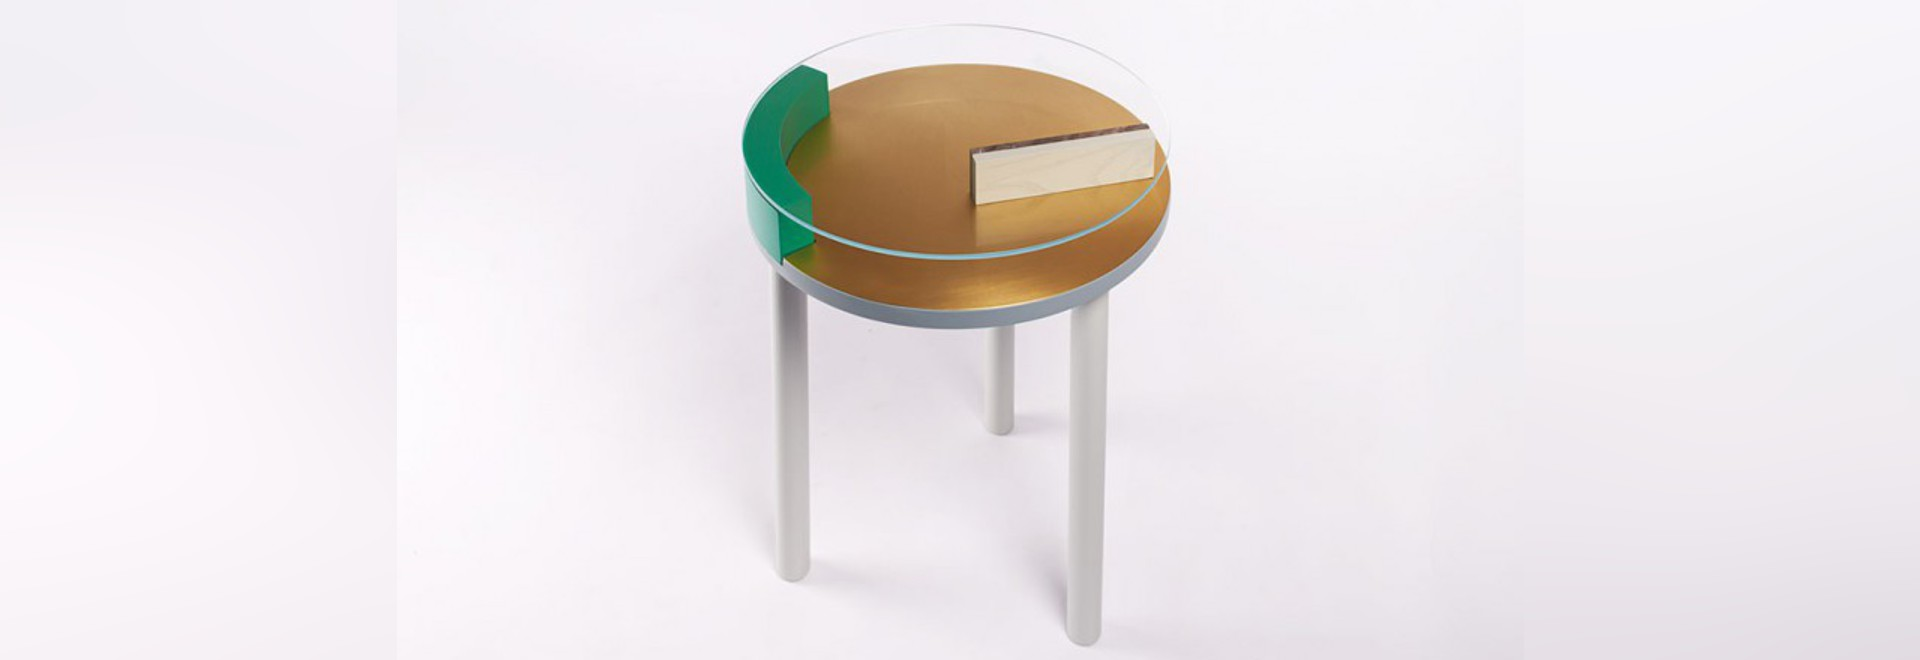 ORA SIDE TABLE: A SCULPTURAL SURFACE FROM ZOË MOWAT